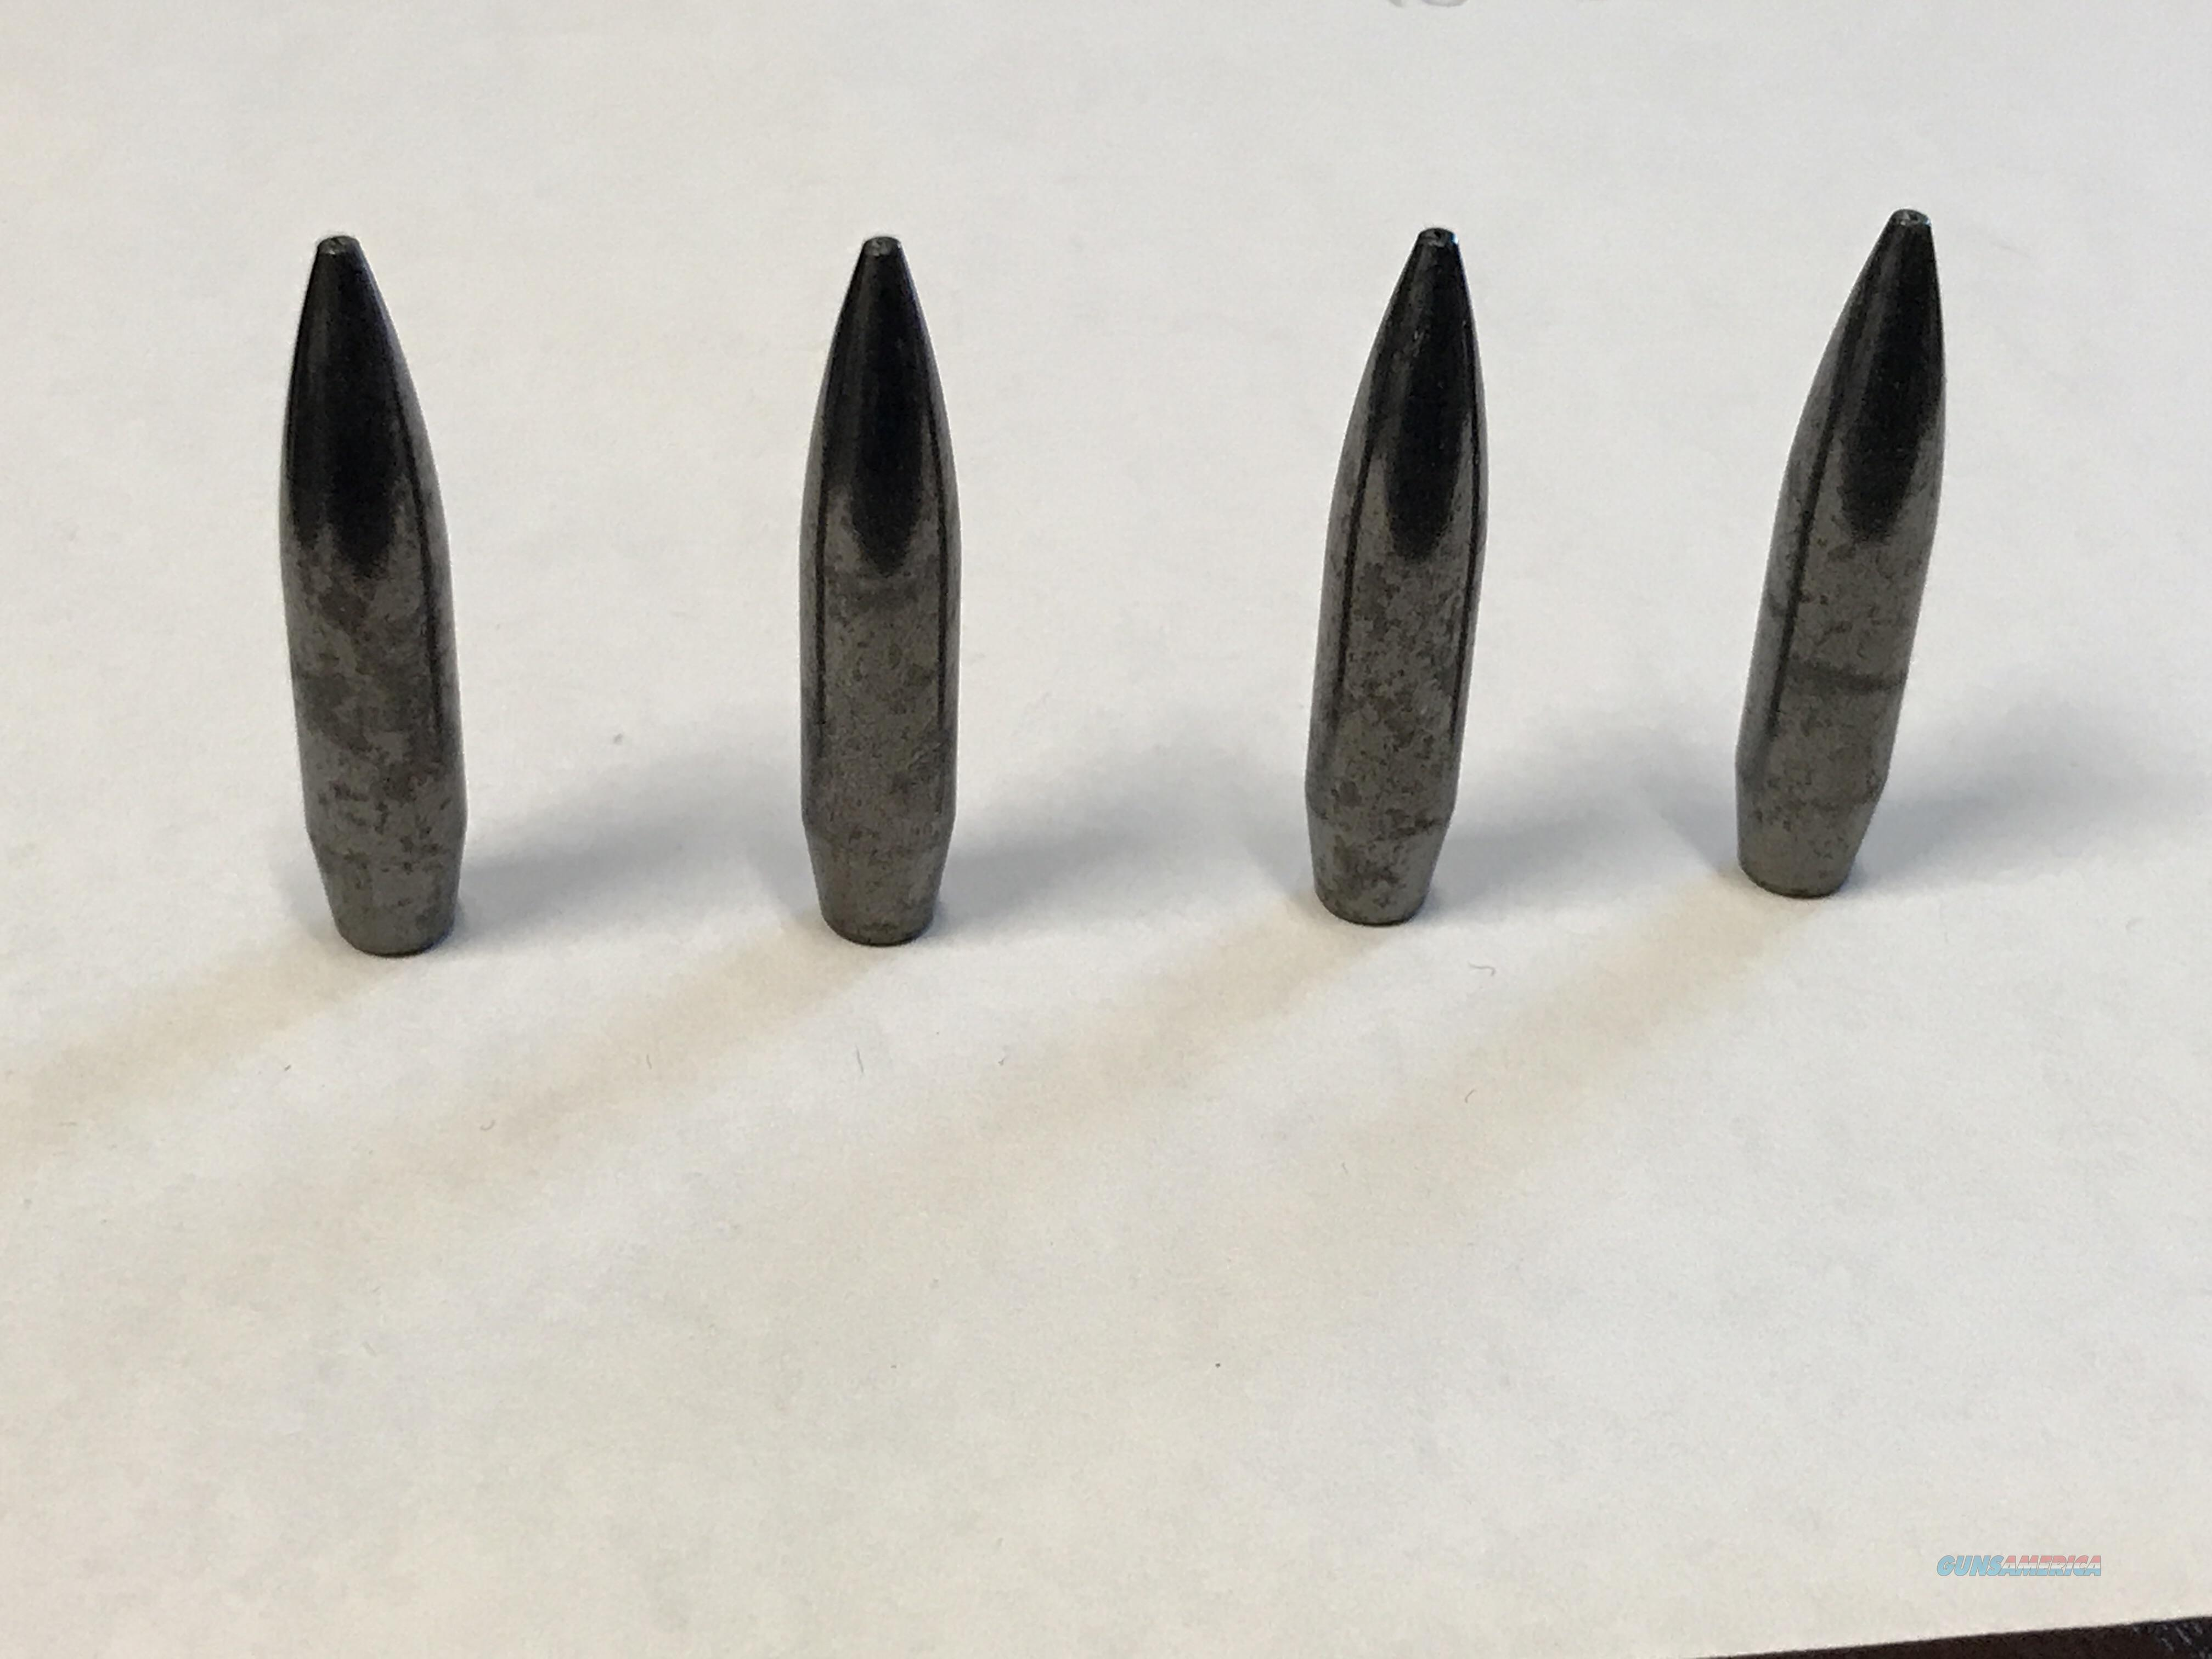 Sierra Projectiles .30 CAL 220gr HPBT Nickel Plated 100 count  Non-Guns > Reloading > Components > Bullets